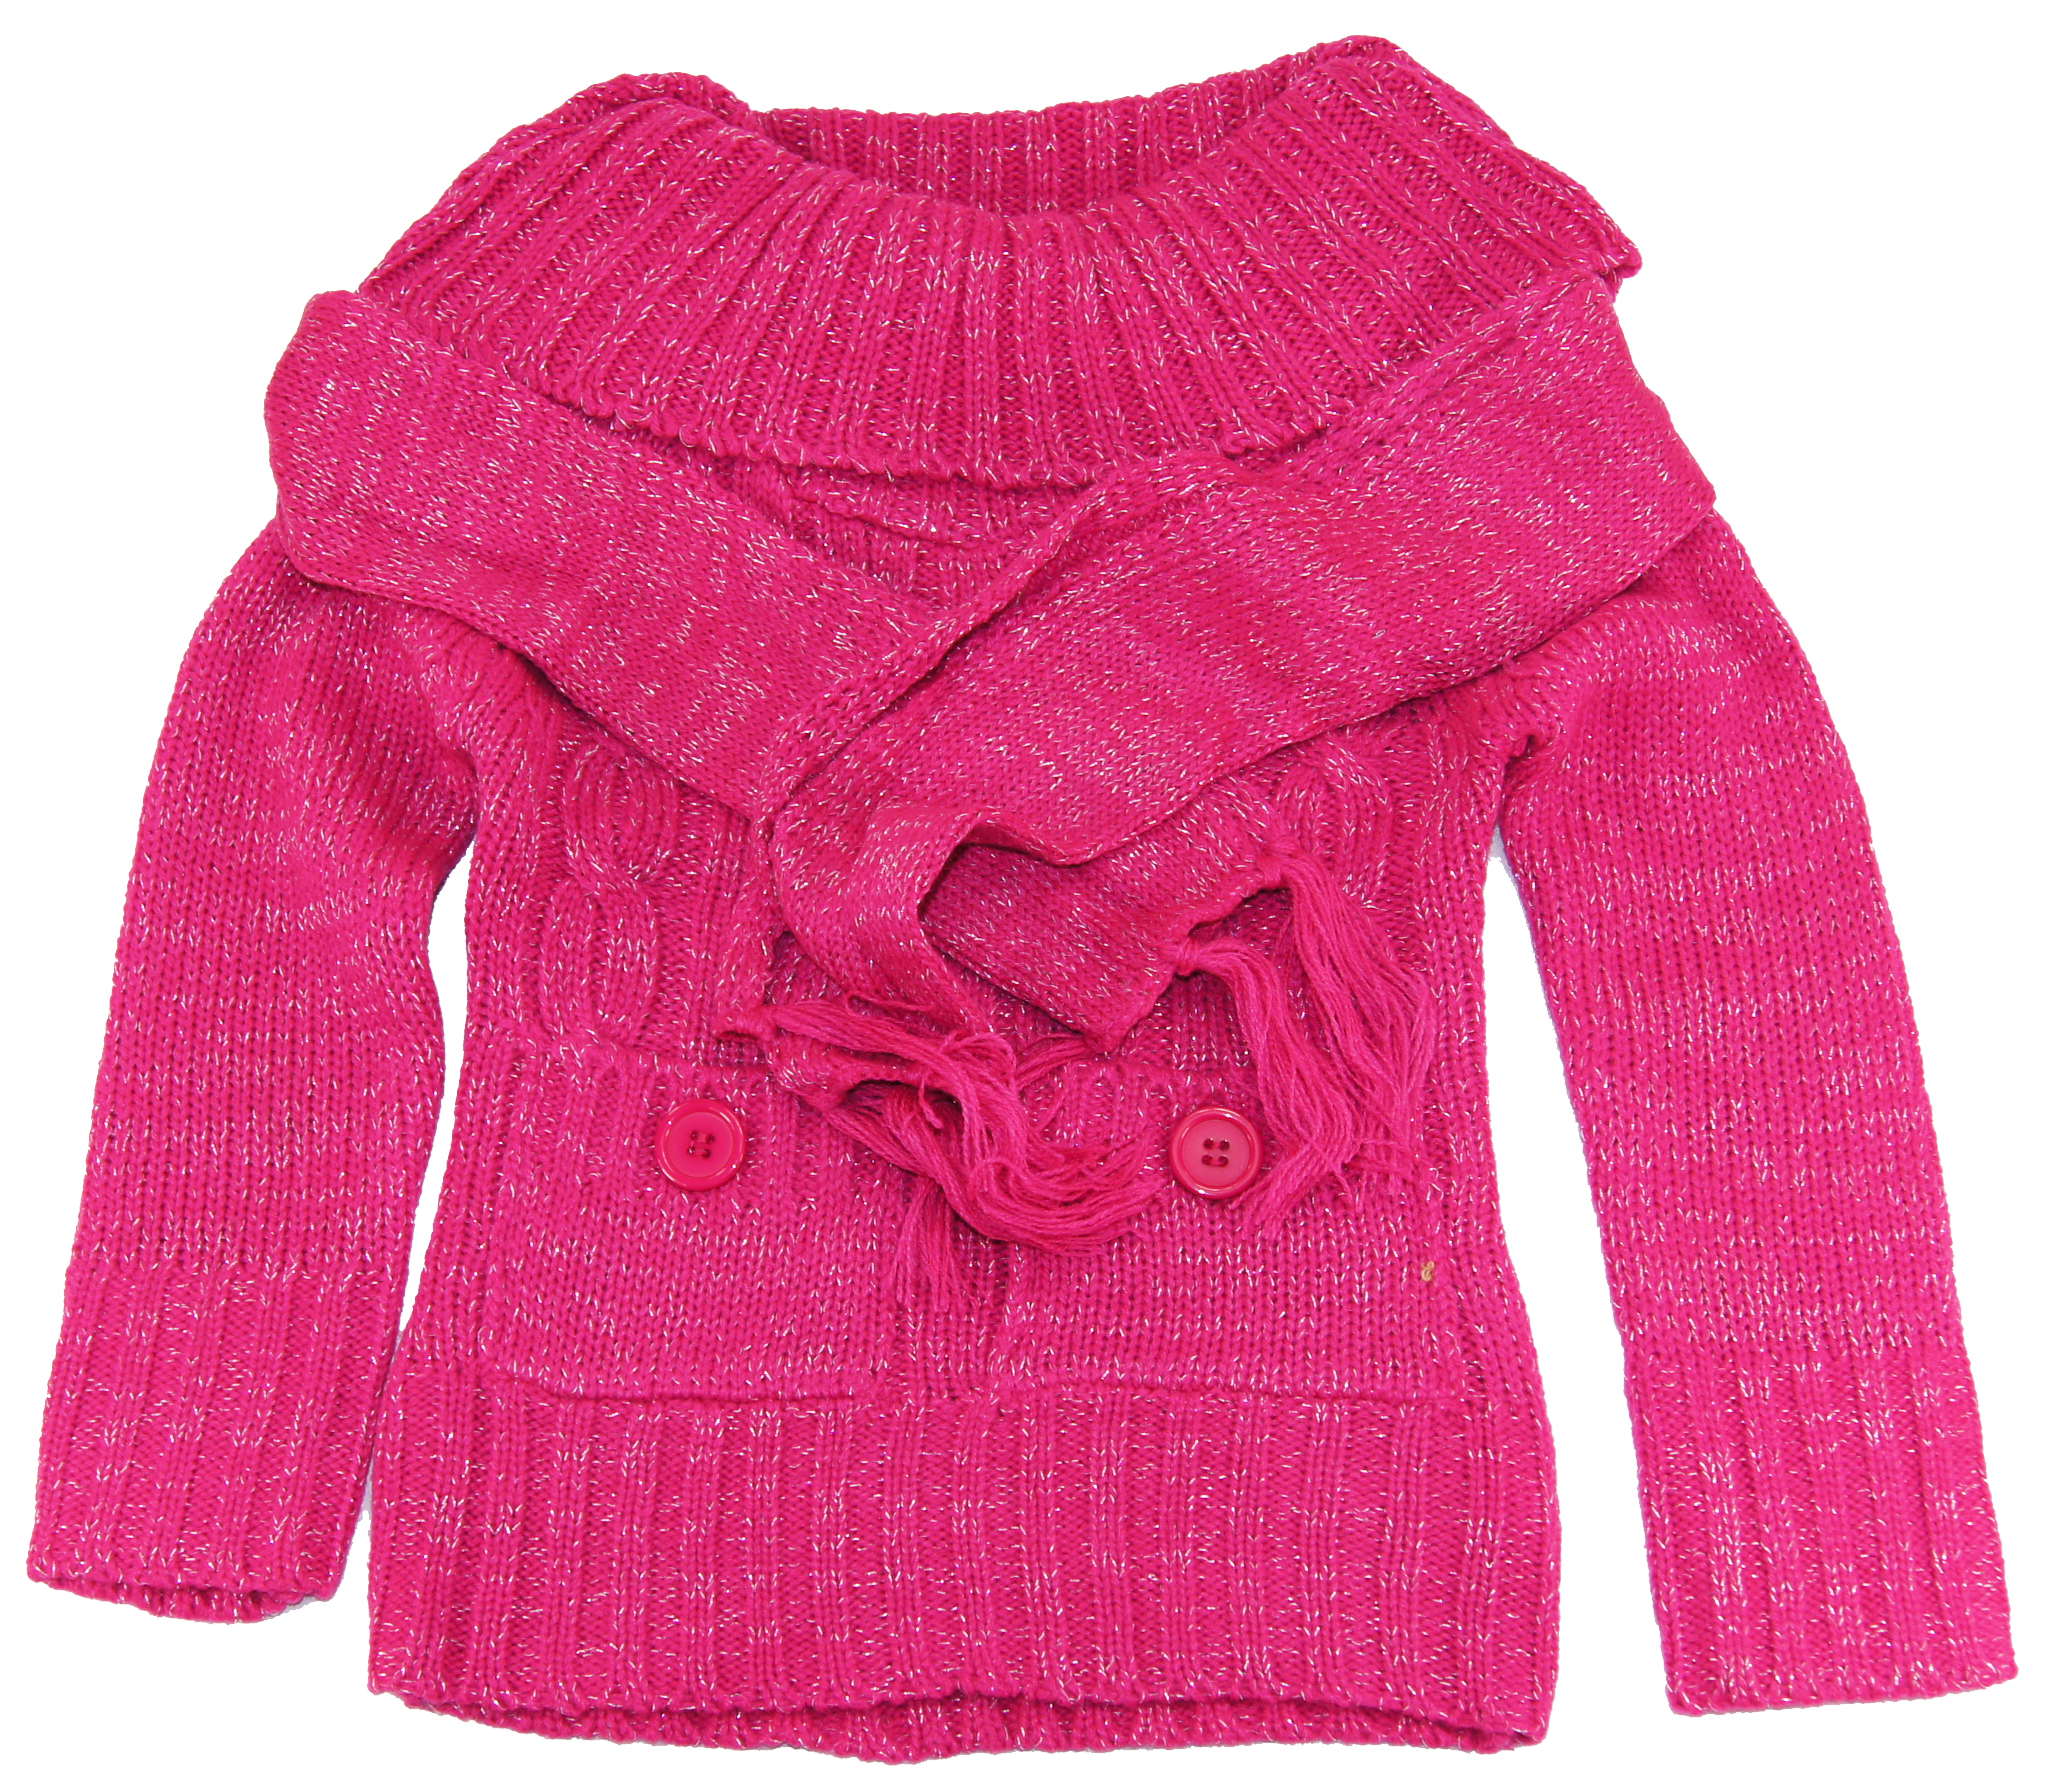 Dollhouse Toddler Girls 2-6X Pink Turtleneck Cardigan Sweater with Scarf Set at Sears.com